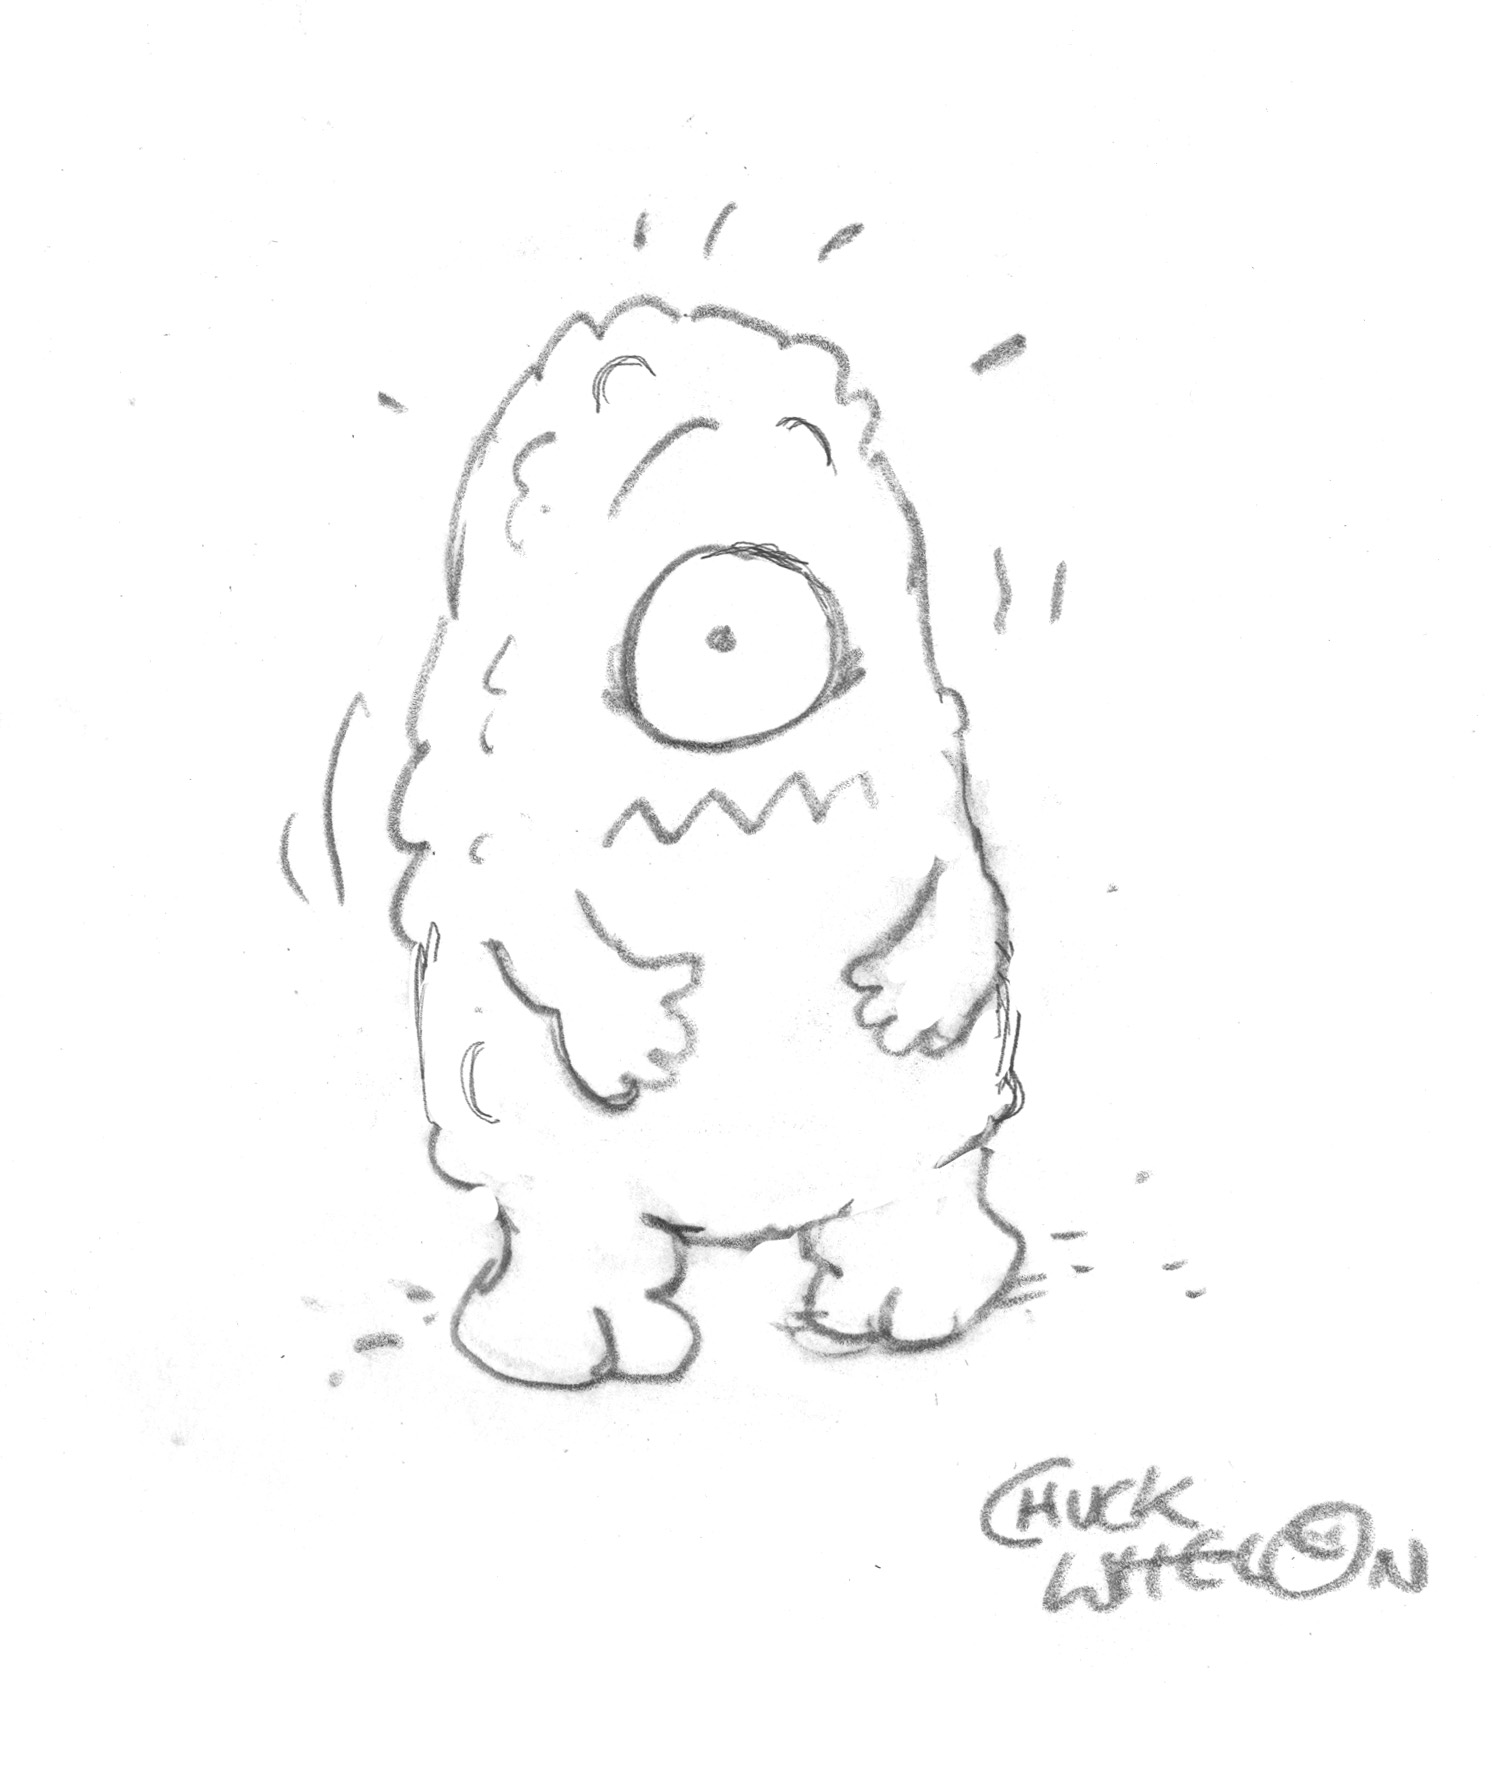 Chuck Whelon — Anxiety Pickle Meet the Anxiety Pickle — a